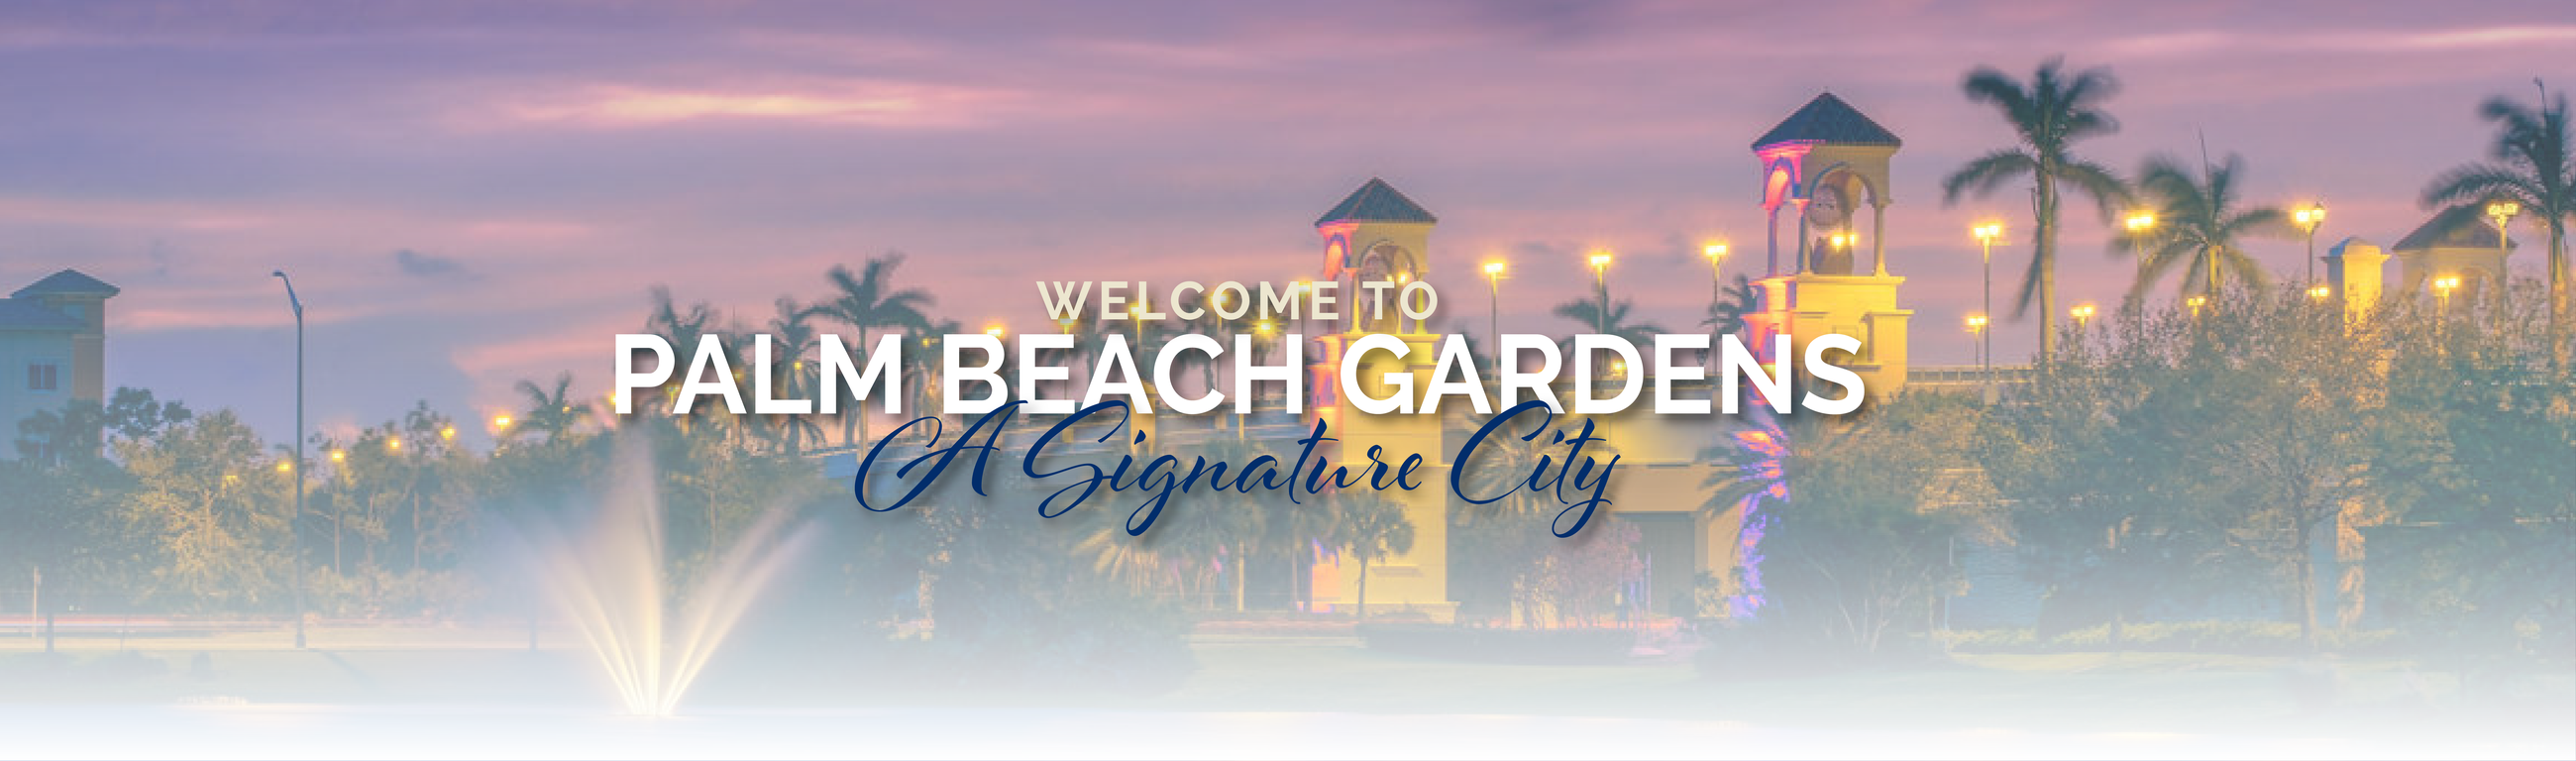 Welcome to Palm Beach Gardens. A Signature City.